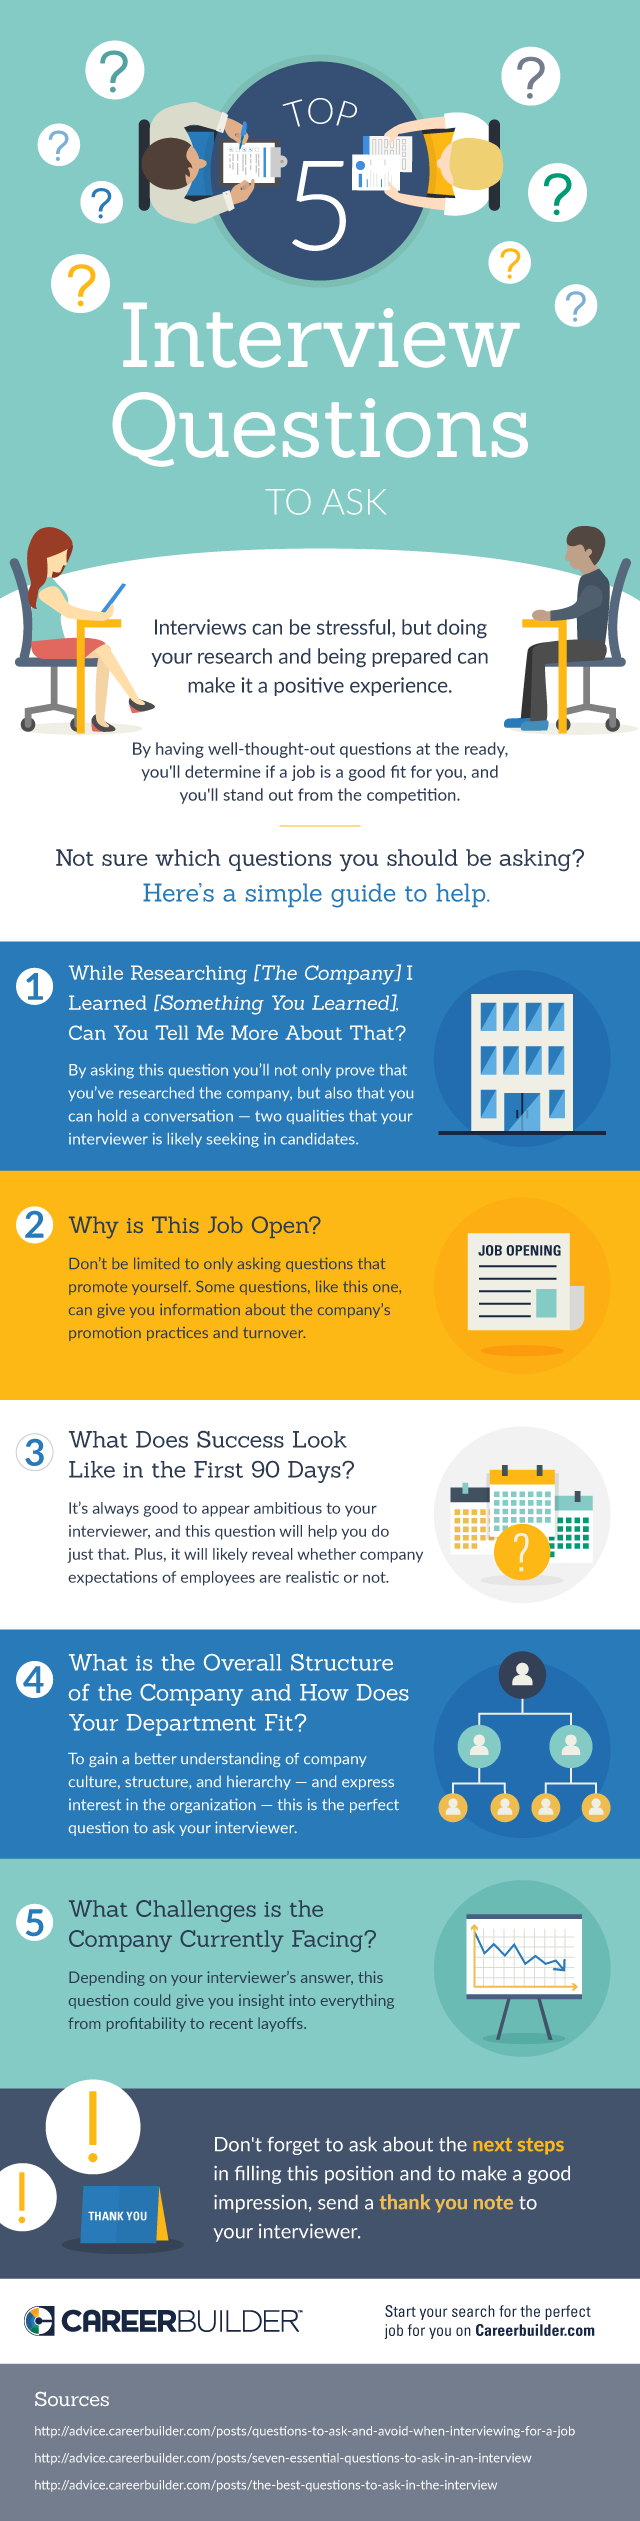 Top 5 Interview Questions to Ask #Infographic